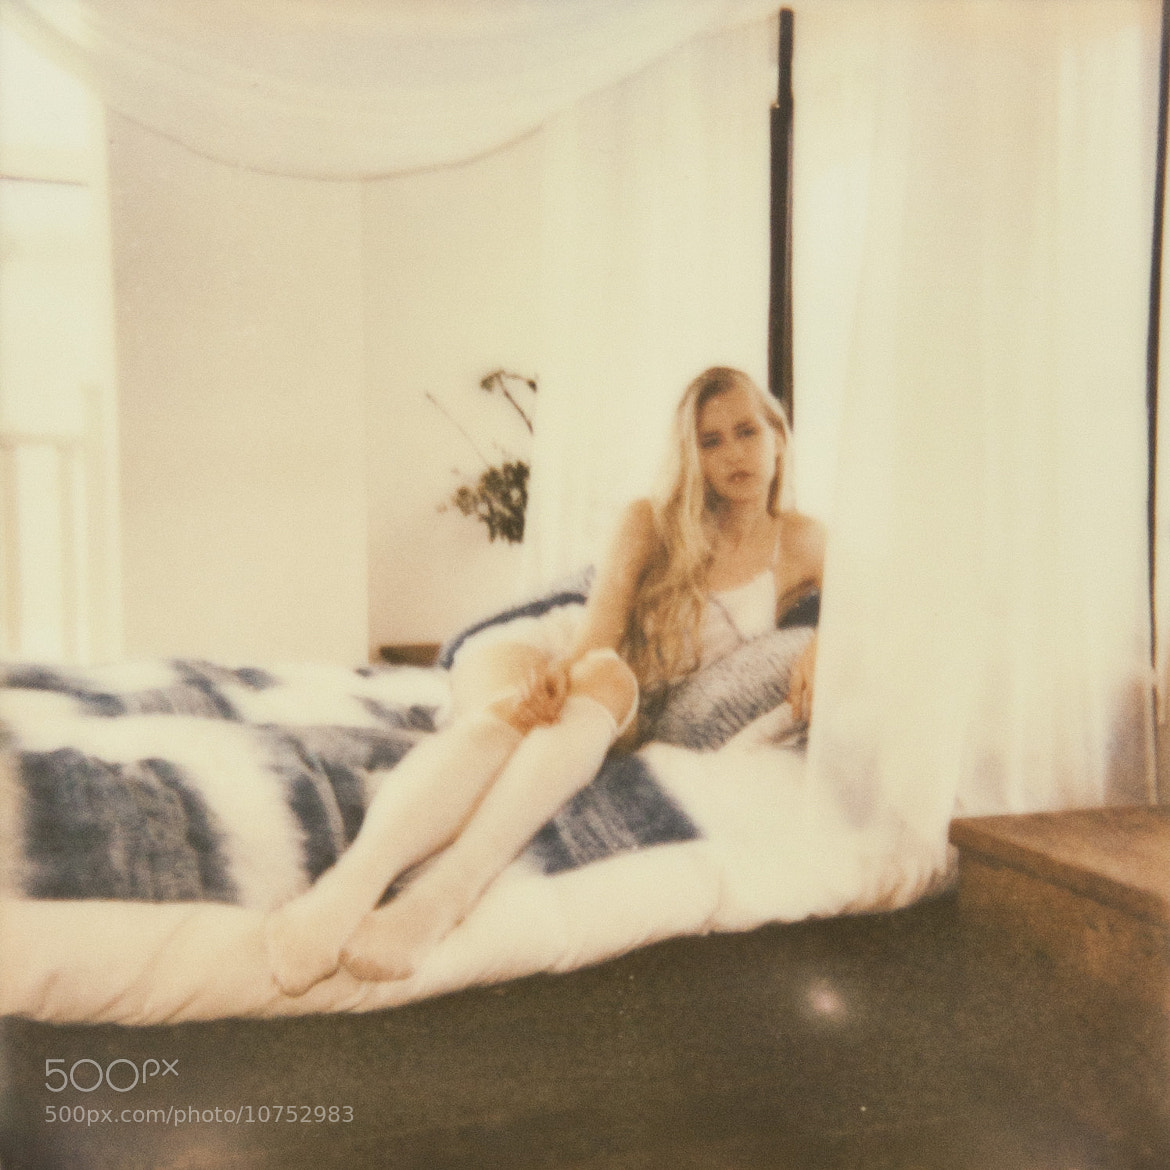 Photograph Polaroids Justine Johnson's Lingerie shoot by Steve Ray 8) on 500px